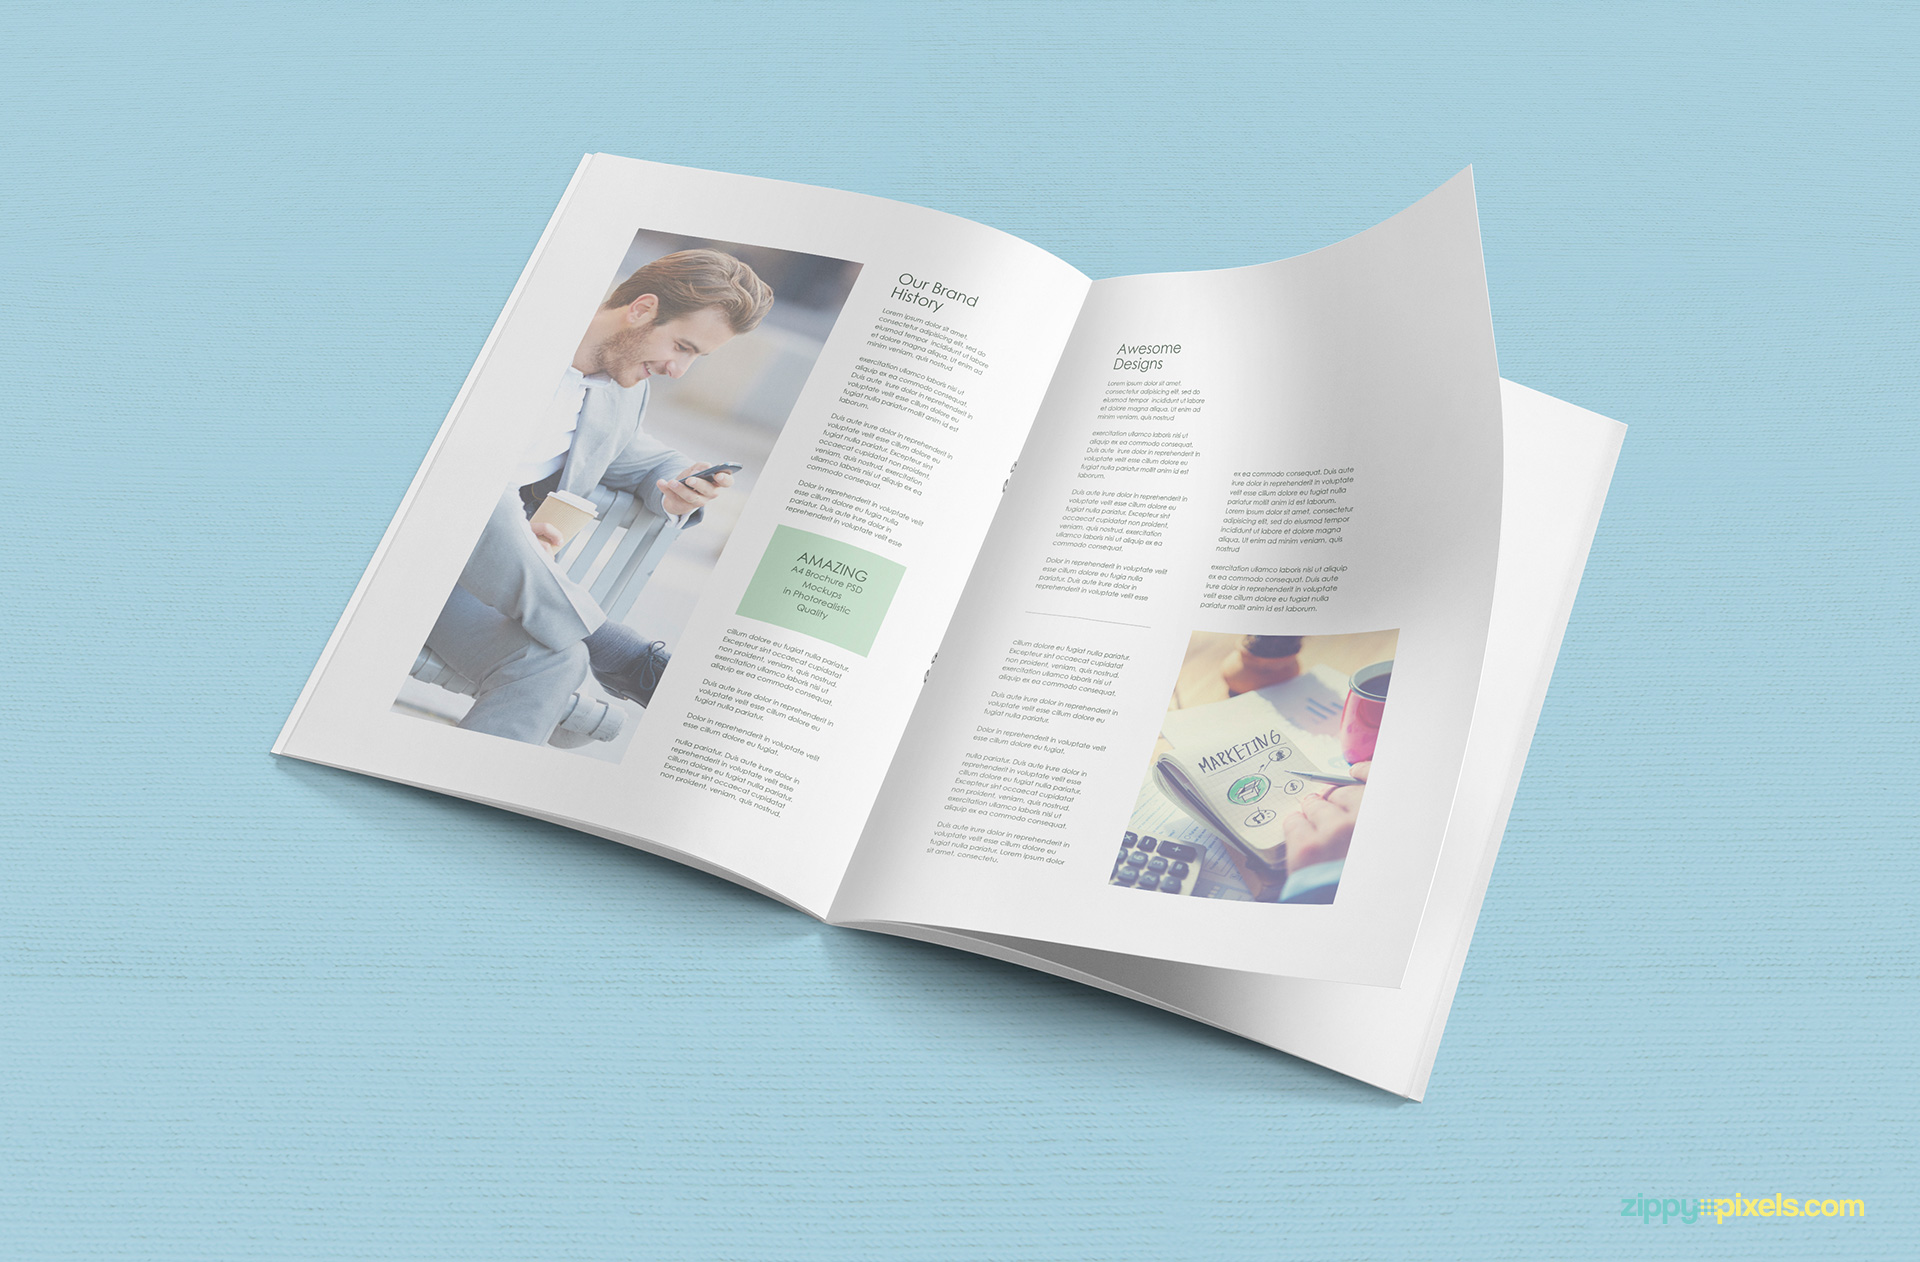 a4-brochure-mockup-page-turning-in-air